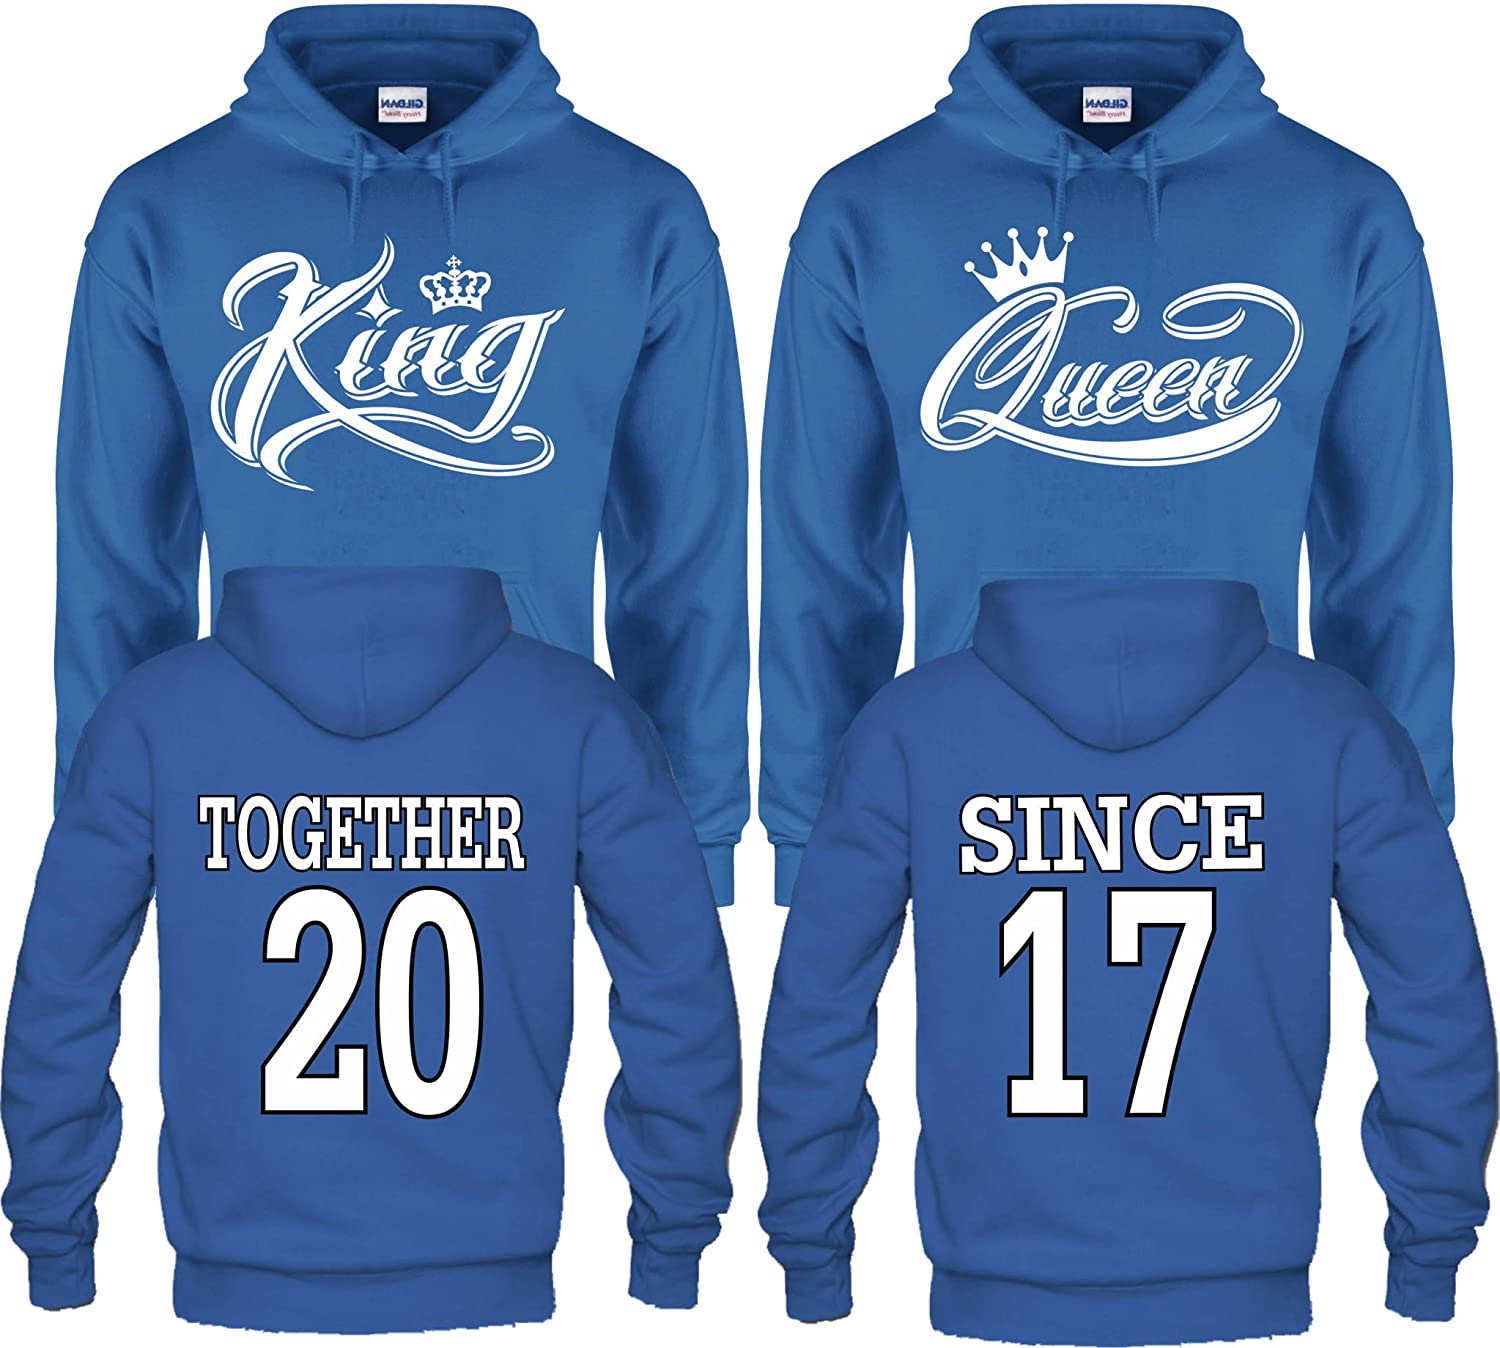 Arts /& Designs King /& Queen Together Since Couple Matching Hoodies Pull Over